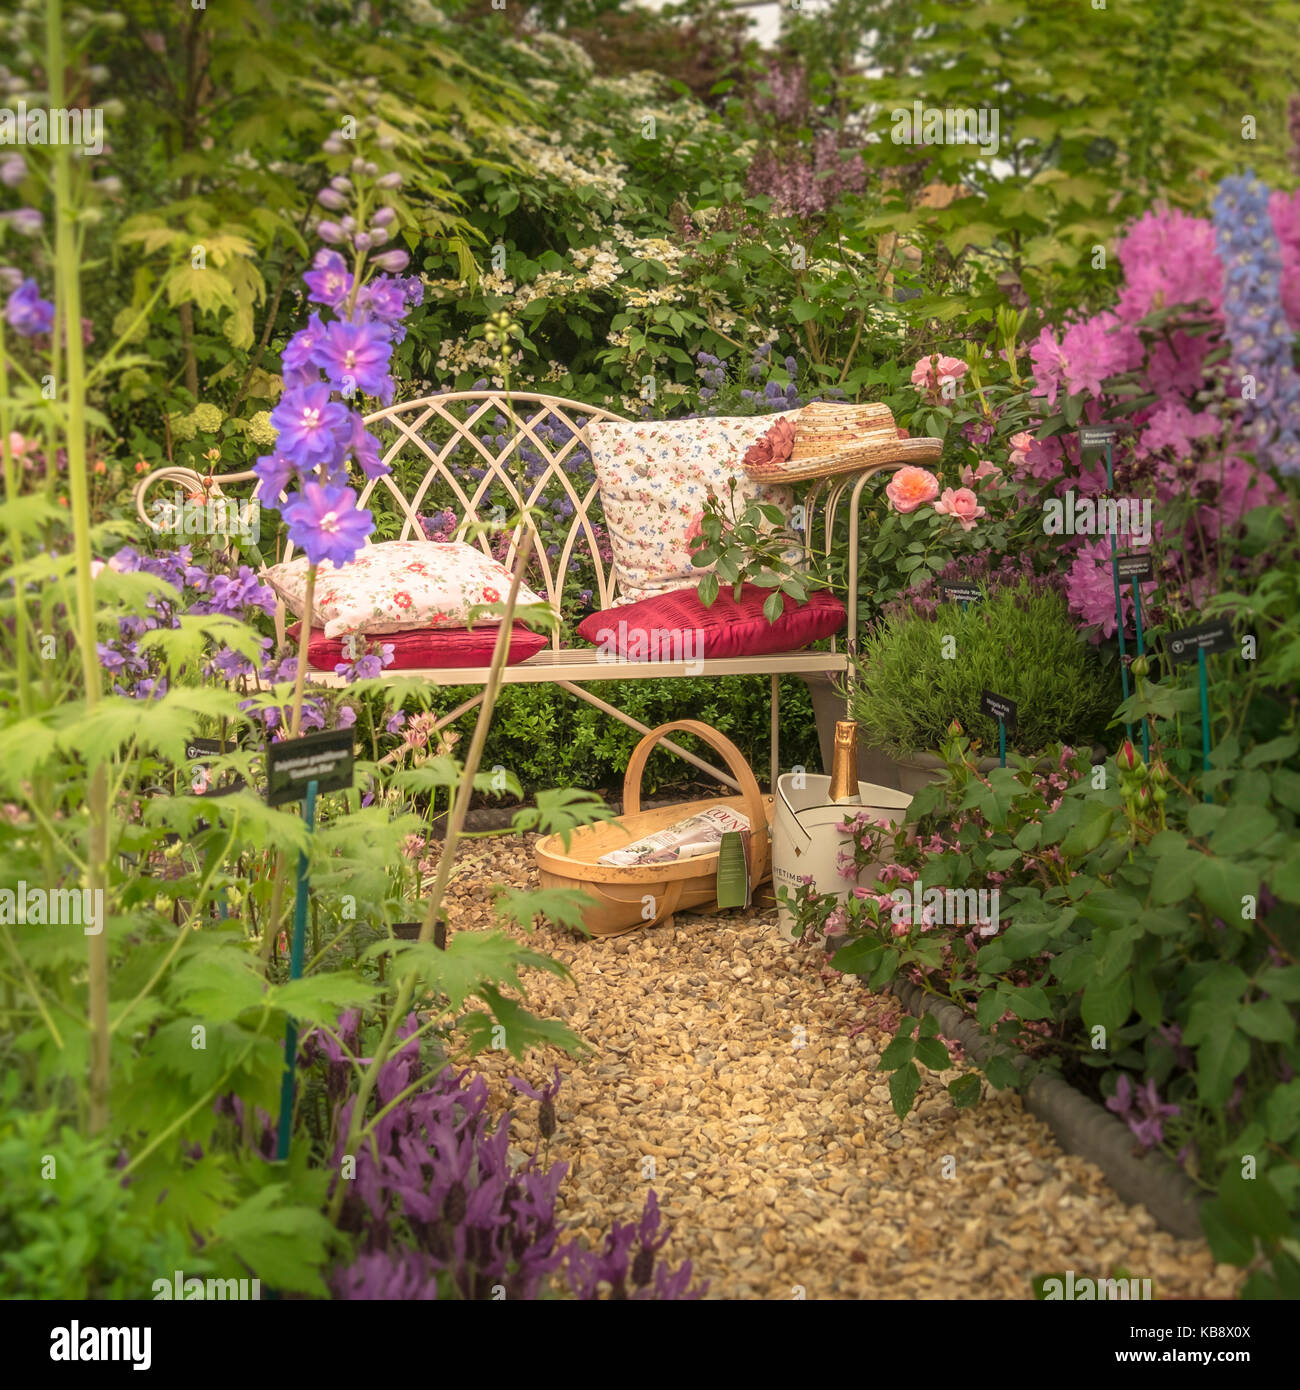 A 2015 Artisan Garden At The RHS Chelsea Flower Show, London, UK.